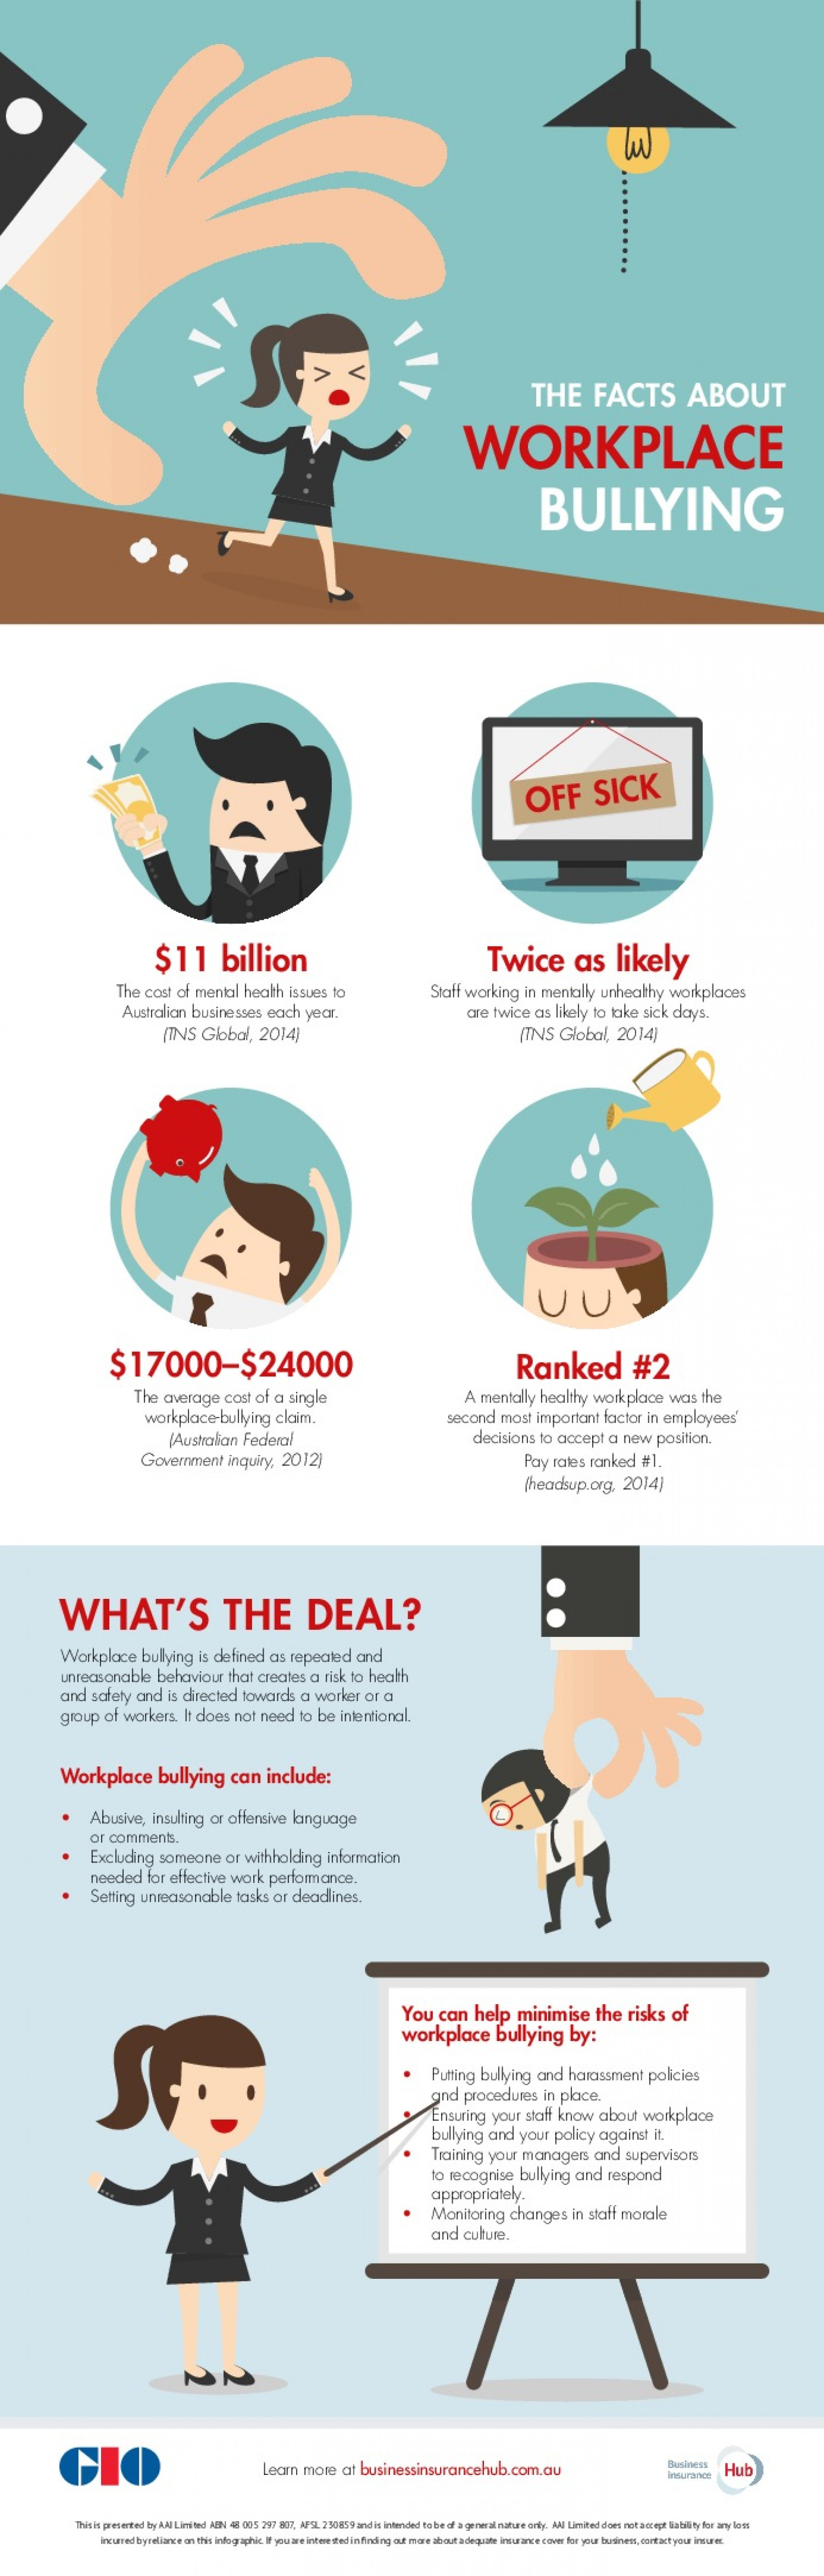 Workplace Bullying in Australia Infographic